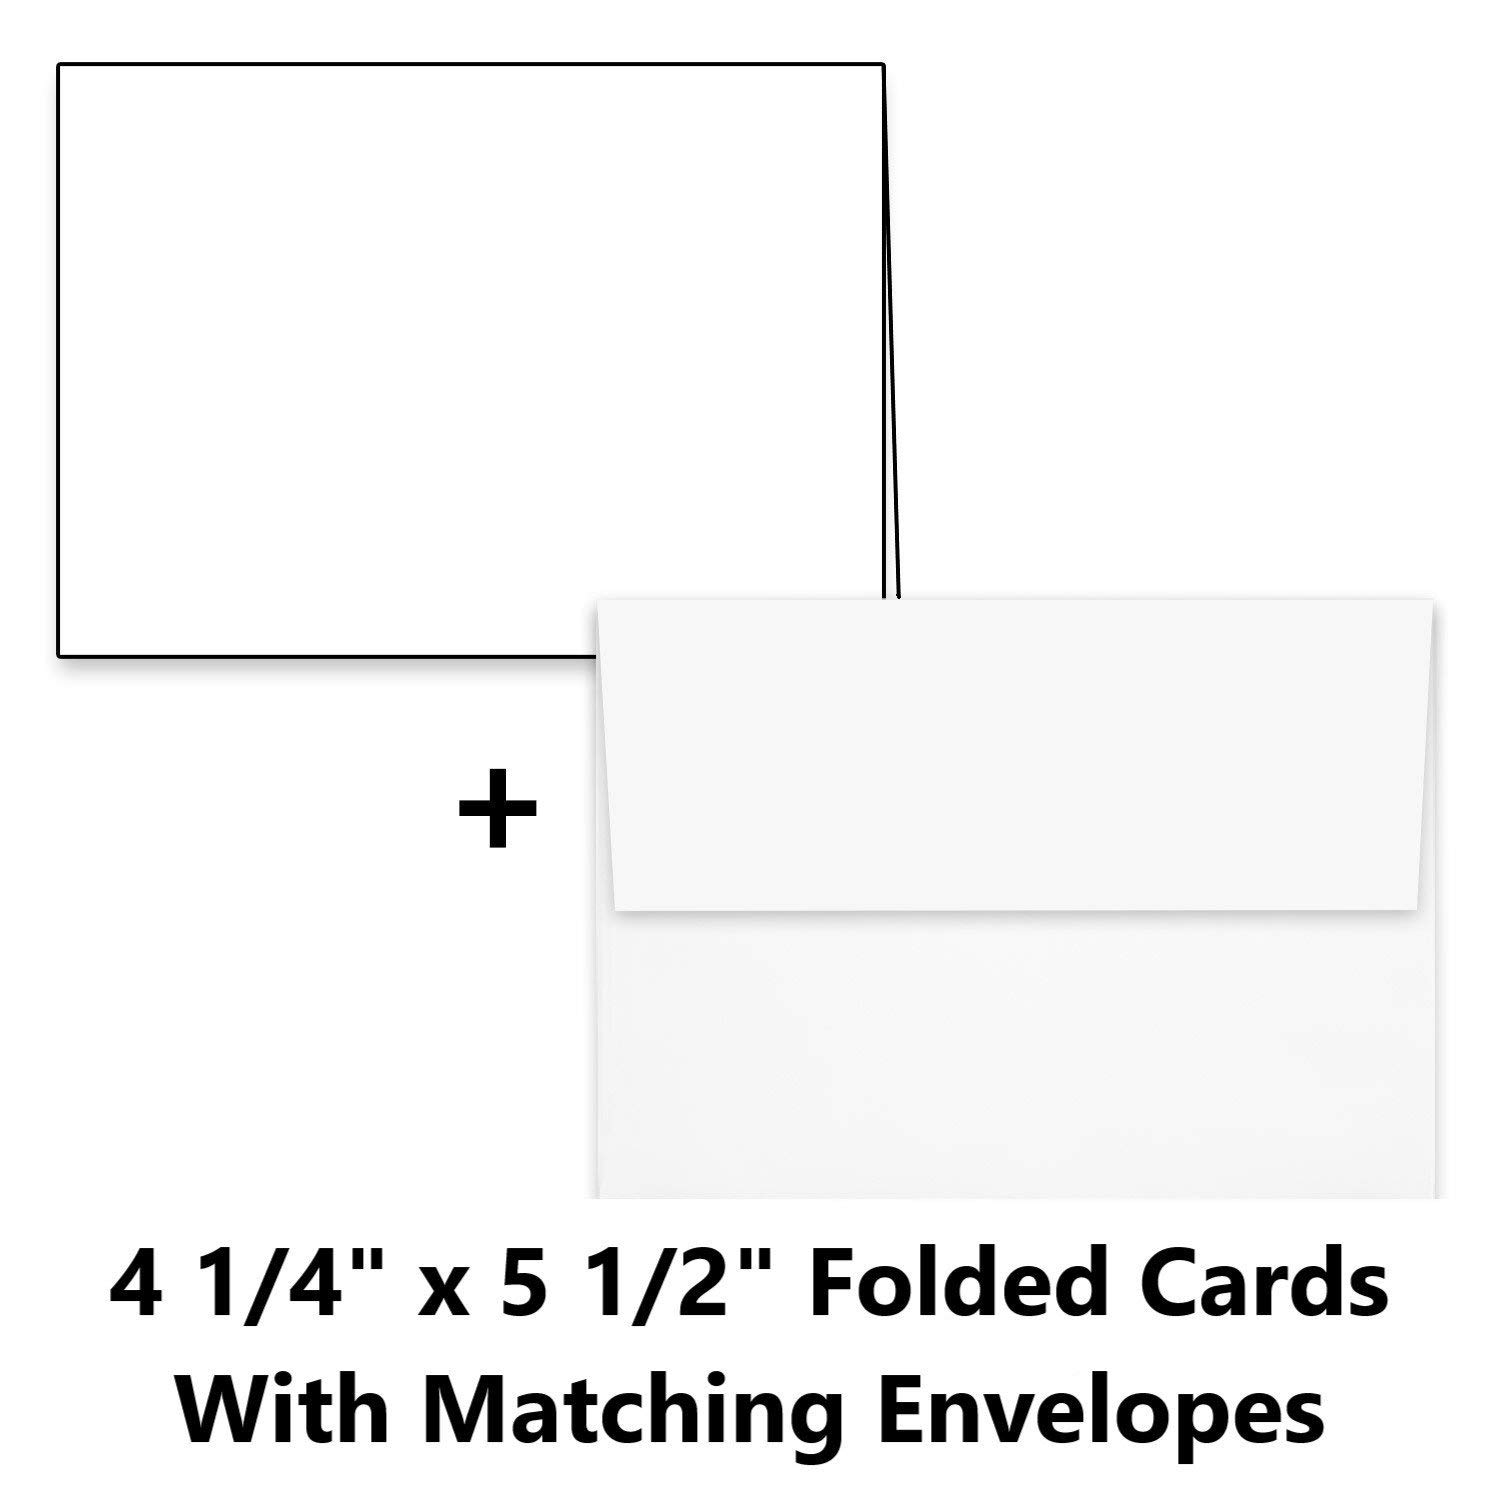 """Hamilco White Cardstock Thick Paper Blank Place Tent Folded A2 Cards - Greeting Invitations Stationary - 4 1/4 x 5 1/2"""" Heavy weight 80 lb Card Stock for Printer (100 Pack with Envelopes)"""